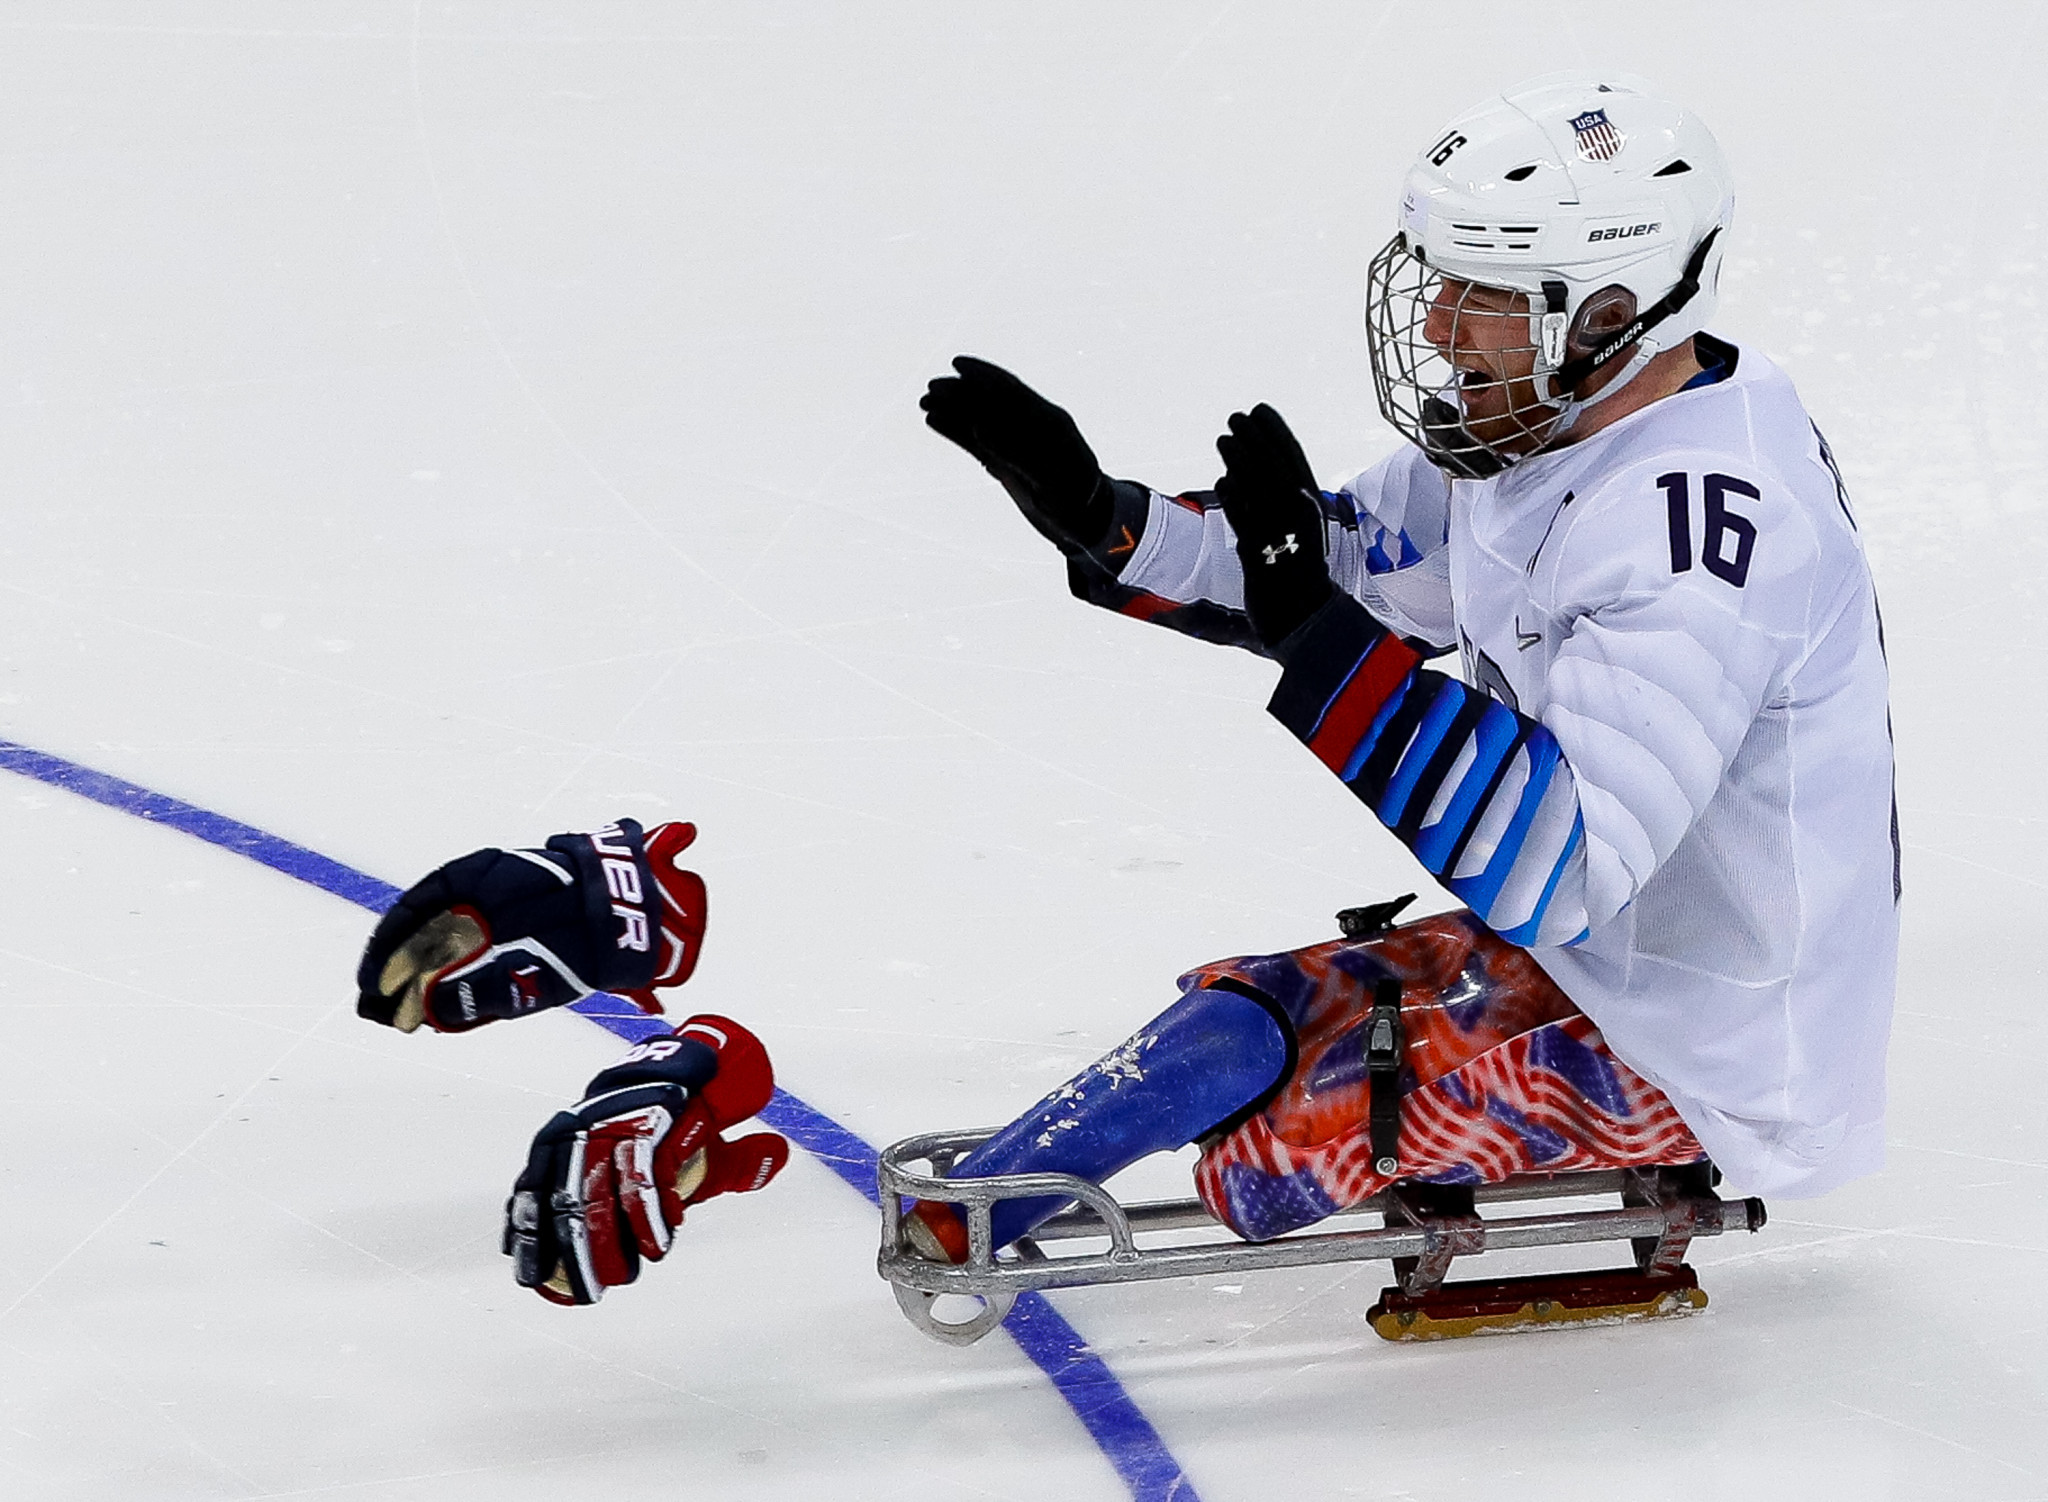 Declan Farmer of the United States is on the IPC Athlete of the Month shortlist for May after leading his team to victory in the Para  Ice Hockey World Championships in Ostrava©Getty Images